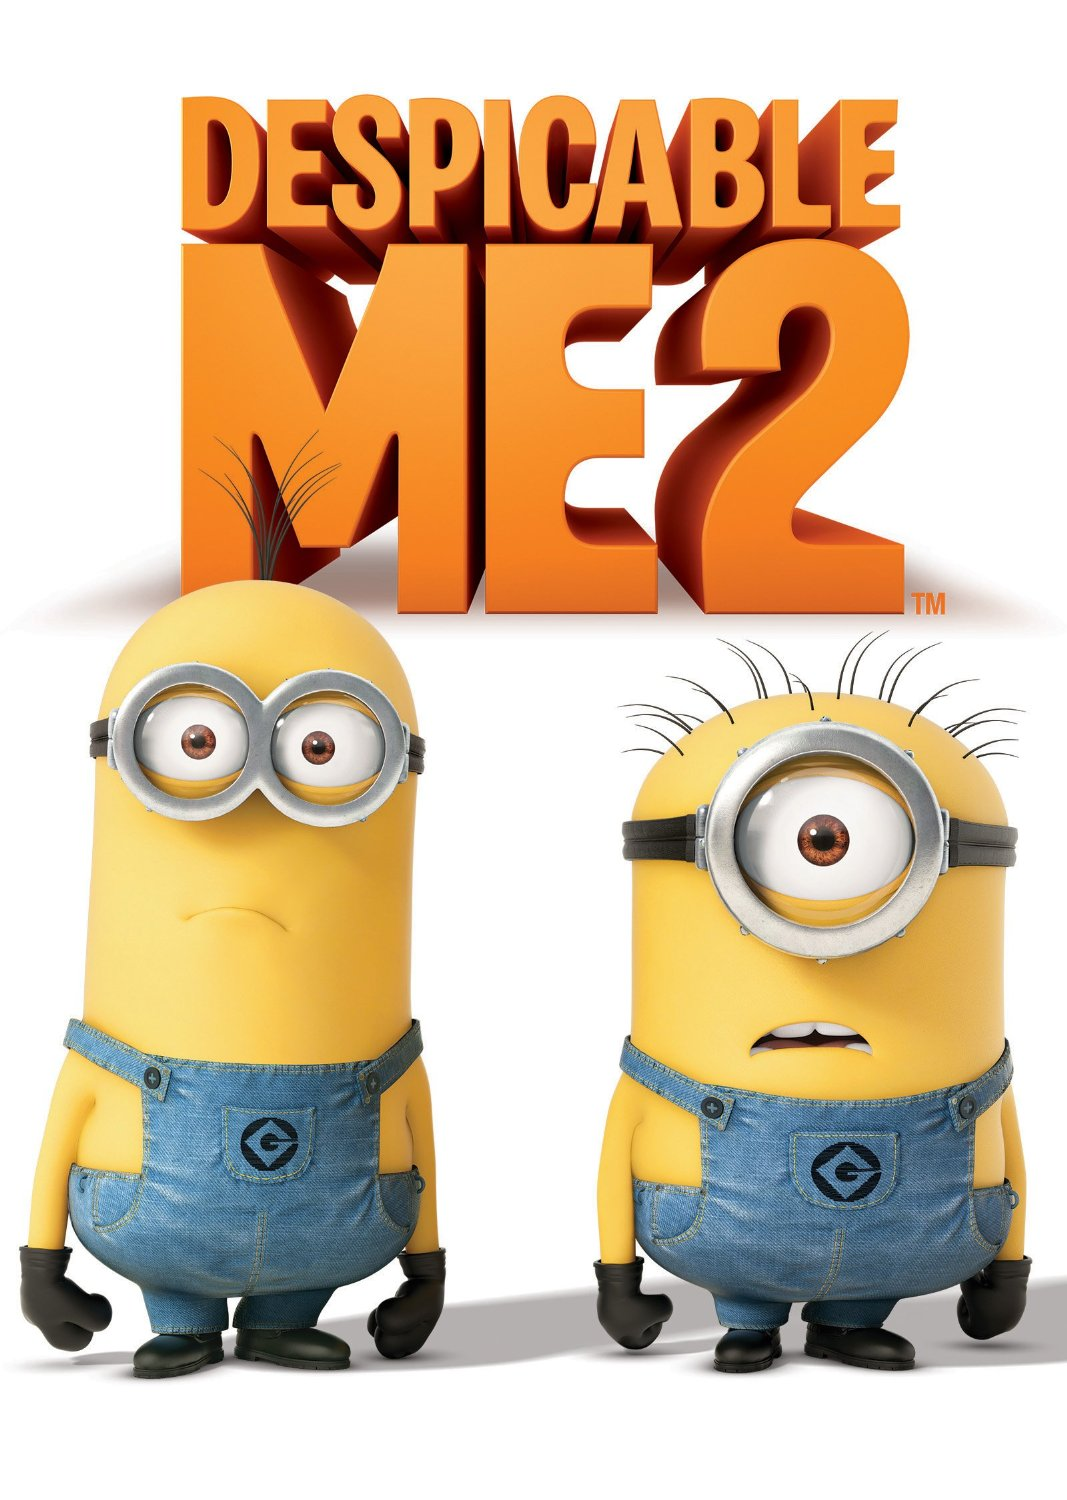 Despicable me 2 (2013) full movies unyu2 movie streaming.